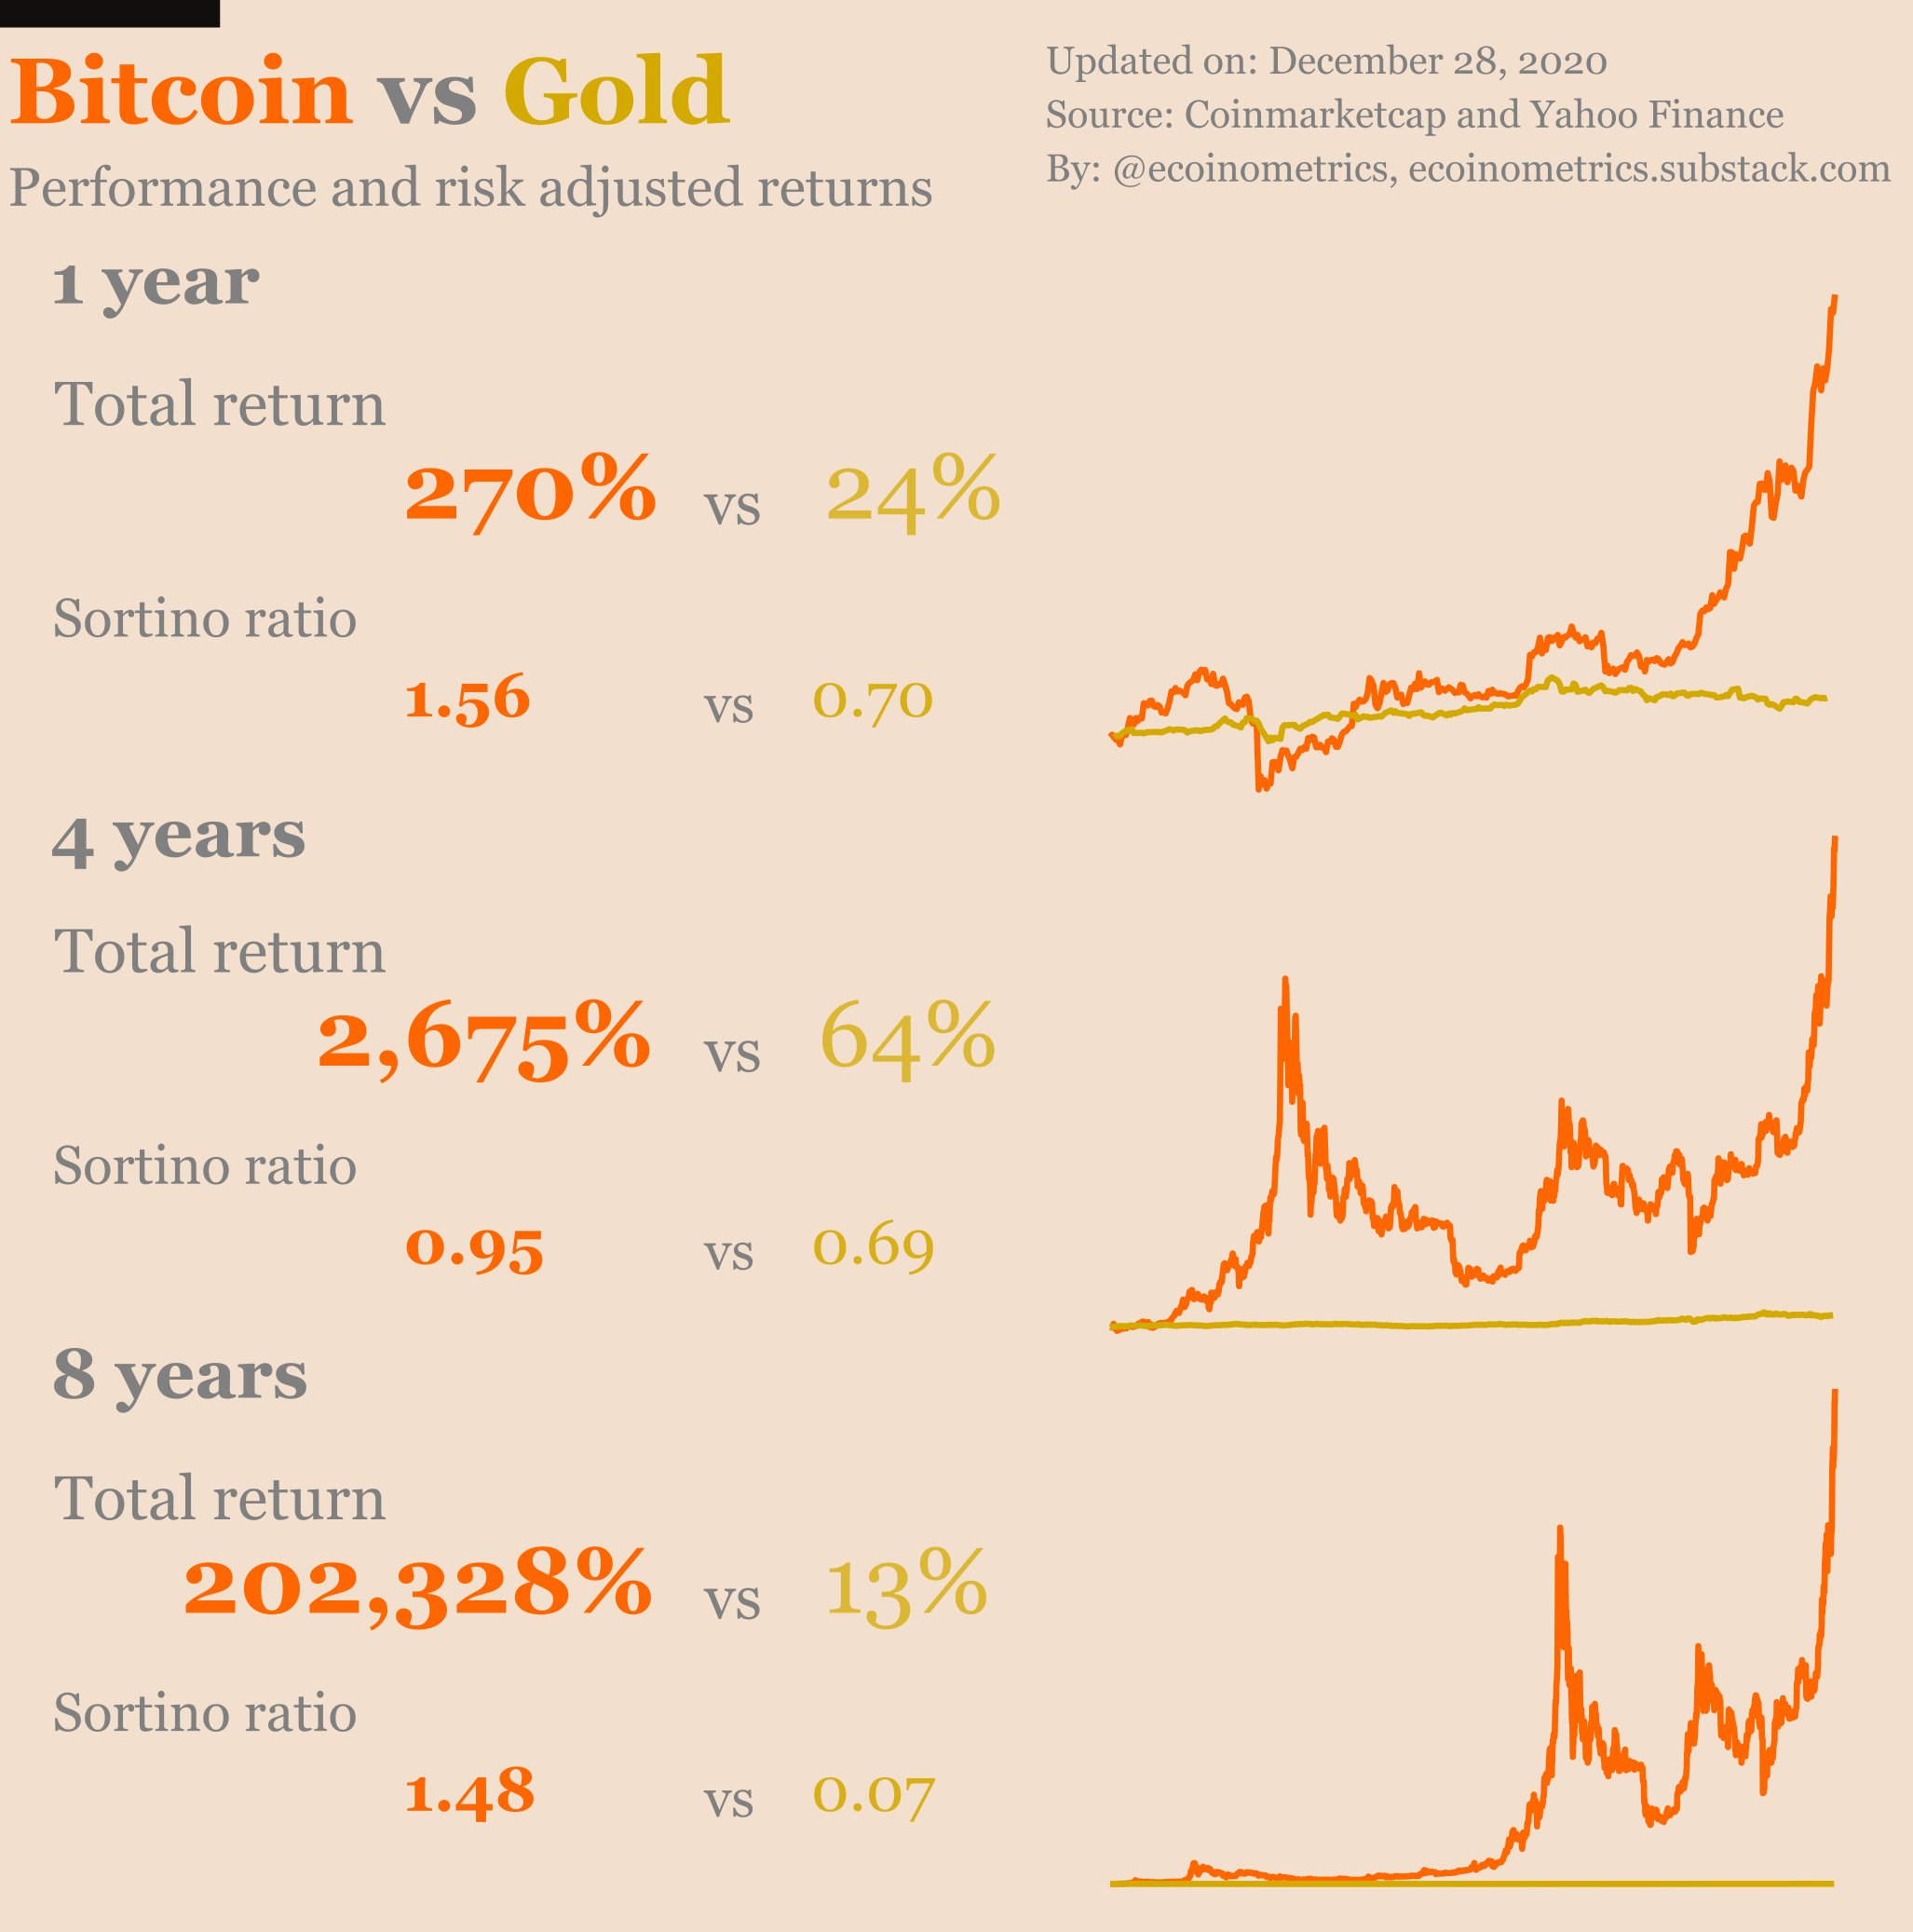 Are comparisons between Bitcoin and Gold absurd?